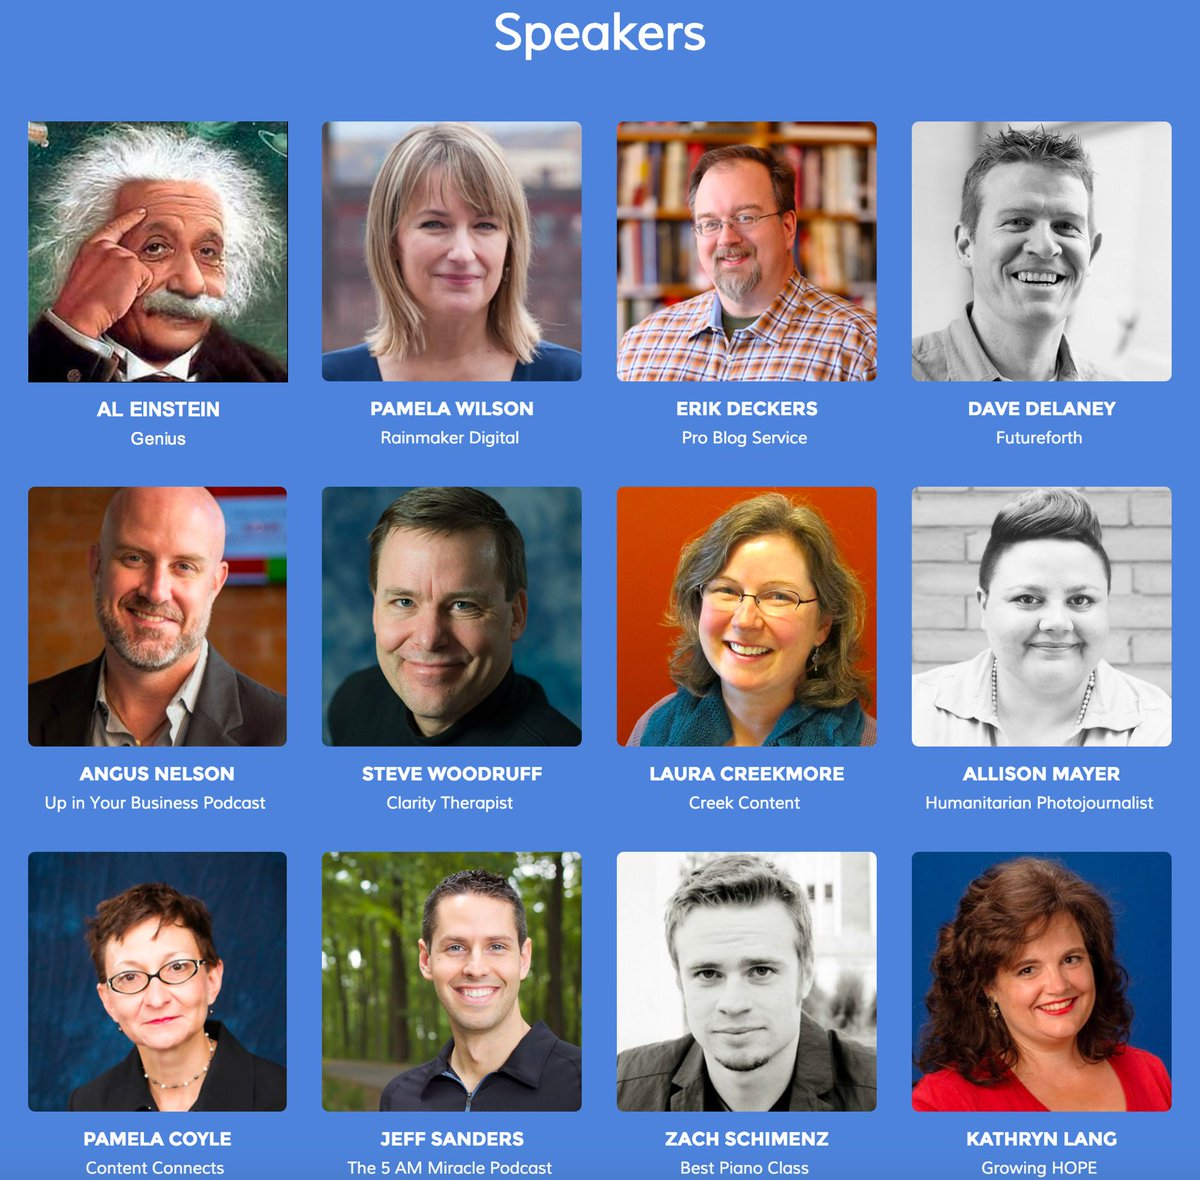 Will you be at @CraftContentNSH? Look at this genius lineup of speakers! #Nashville @AlbertEinstein https://t.co/tb53Ch4p2V